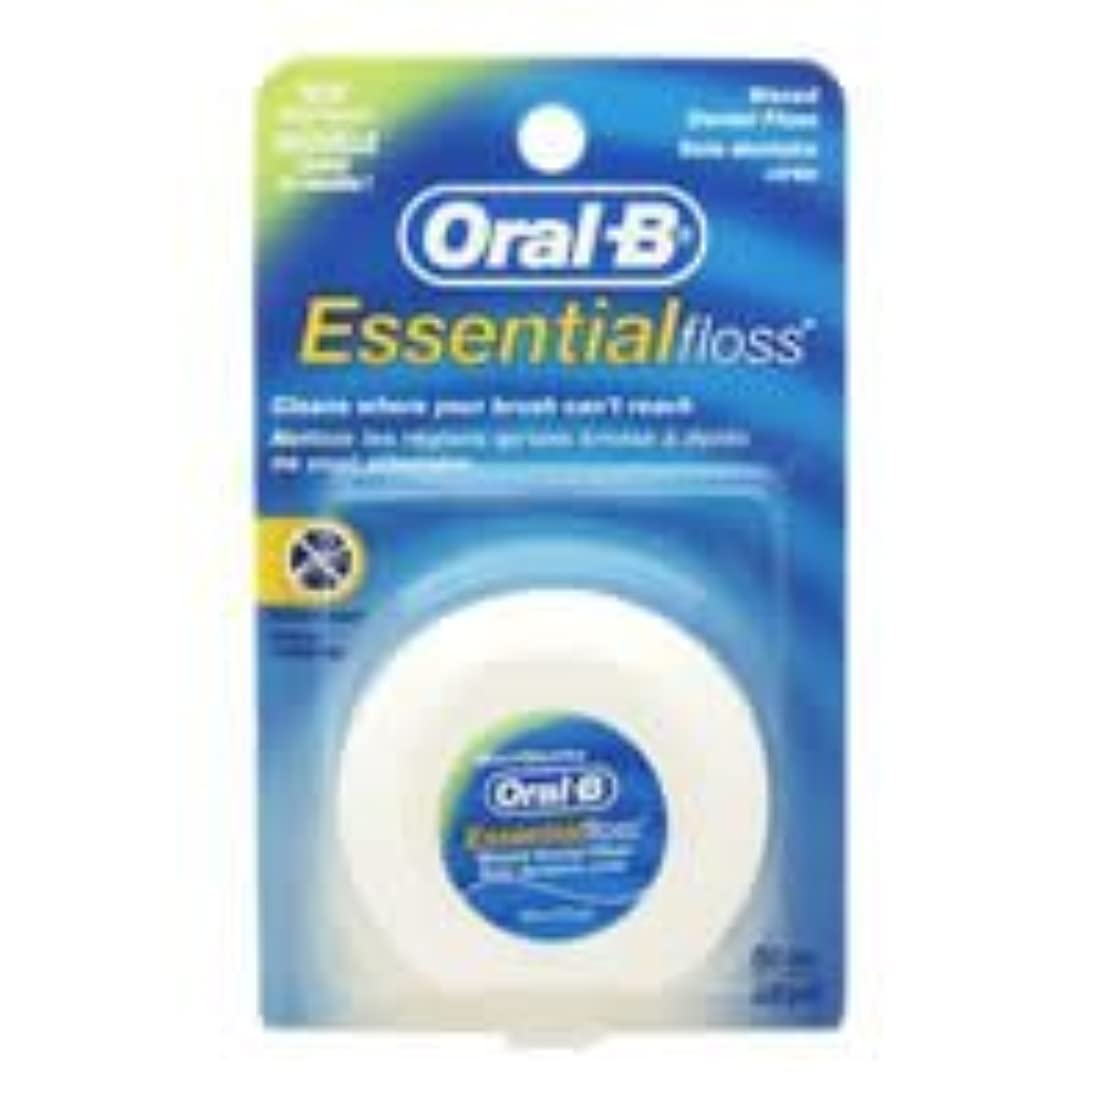 話をする指定する回転するOral-B Essential Waxed Dental Floss Mint by Oral-B